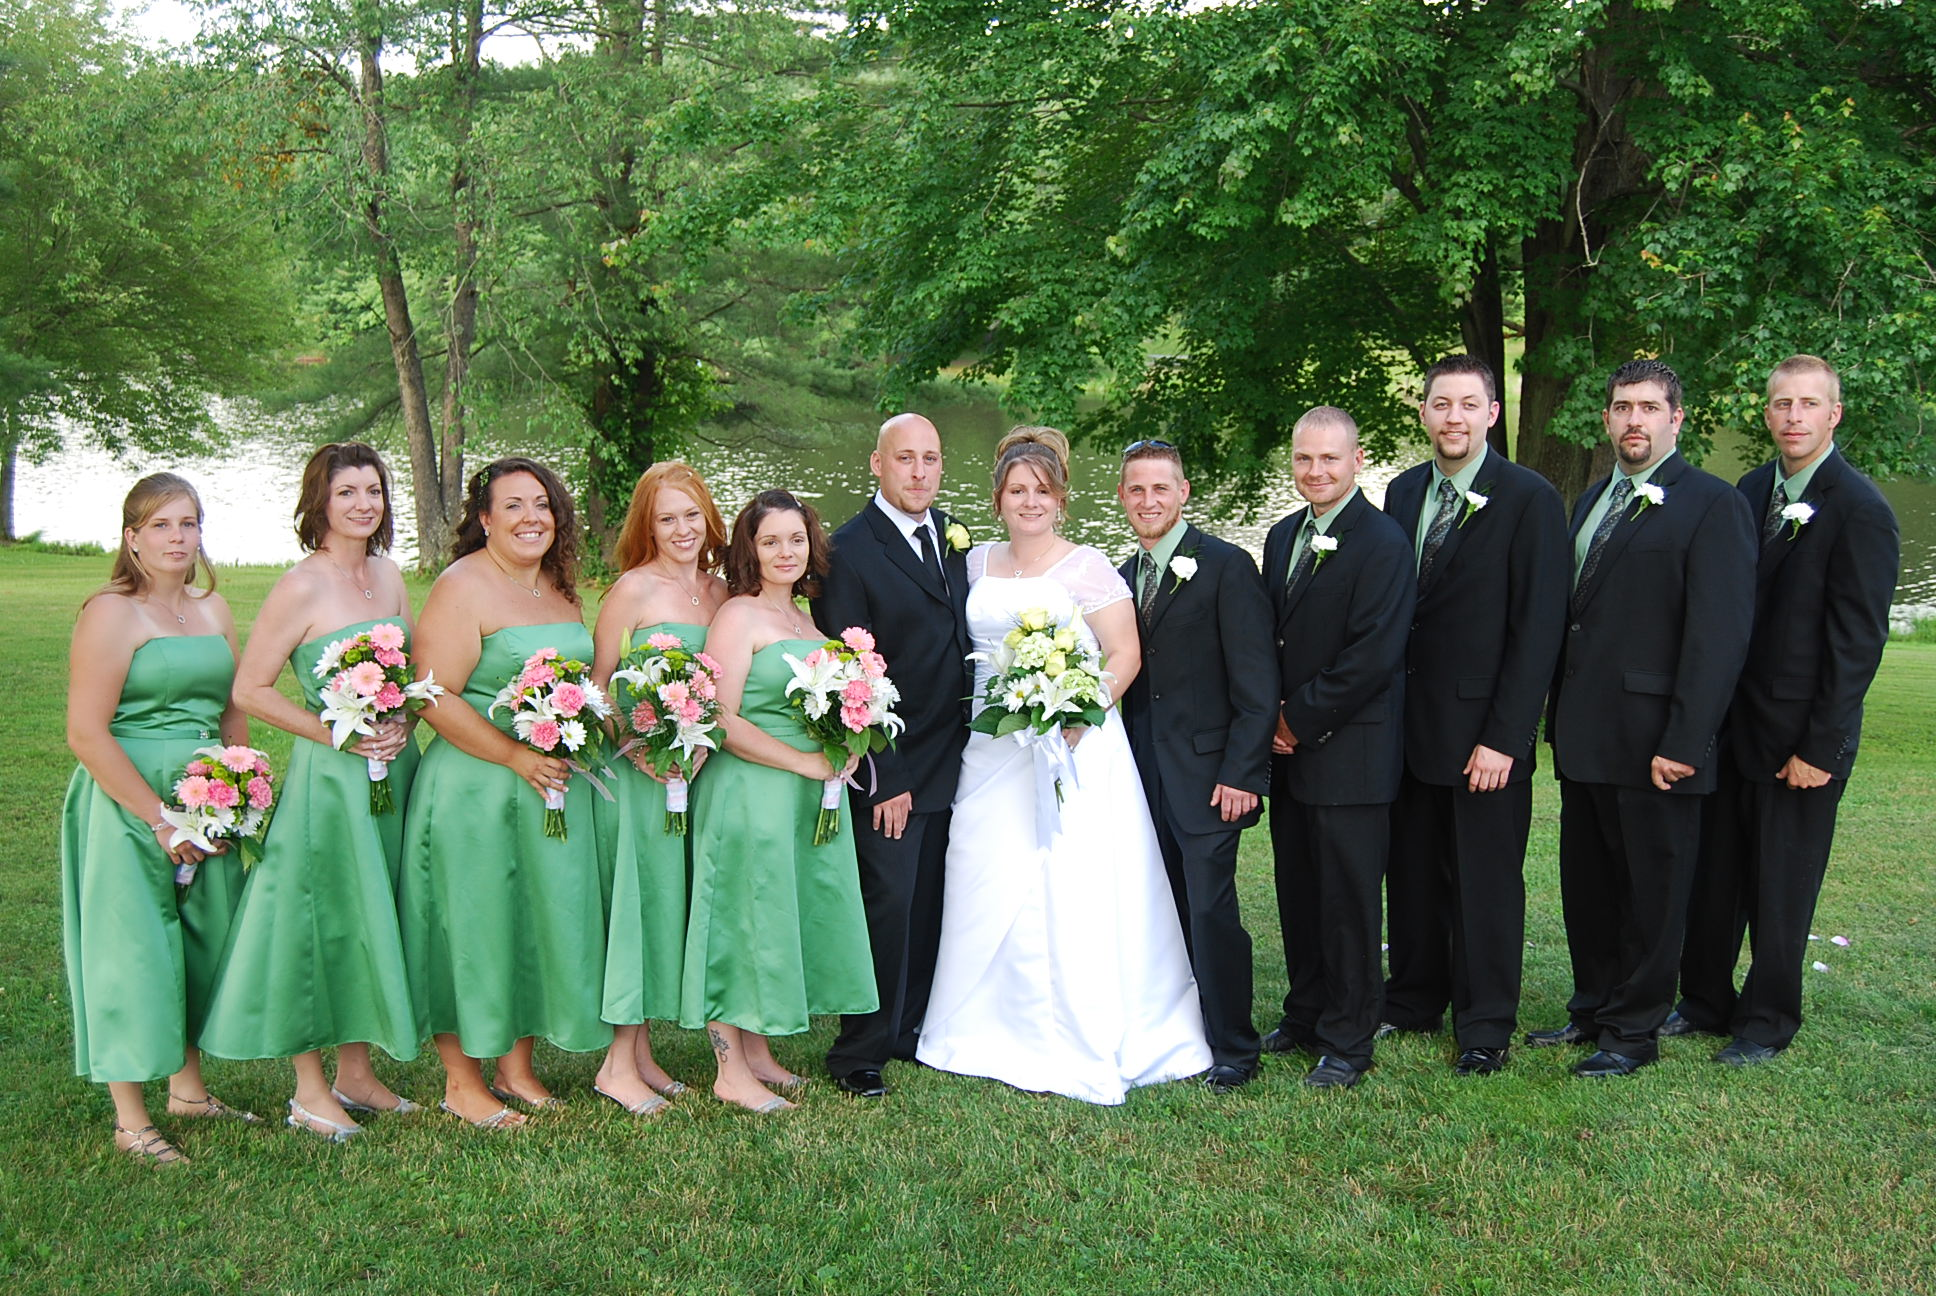 Irish theme wedding ideas traditions song list albany for Wedding party ideas